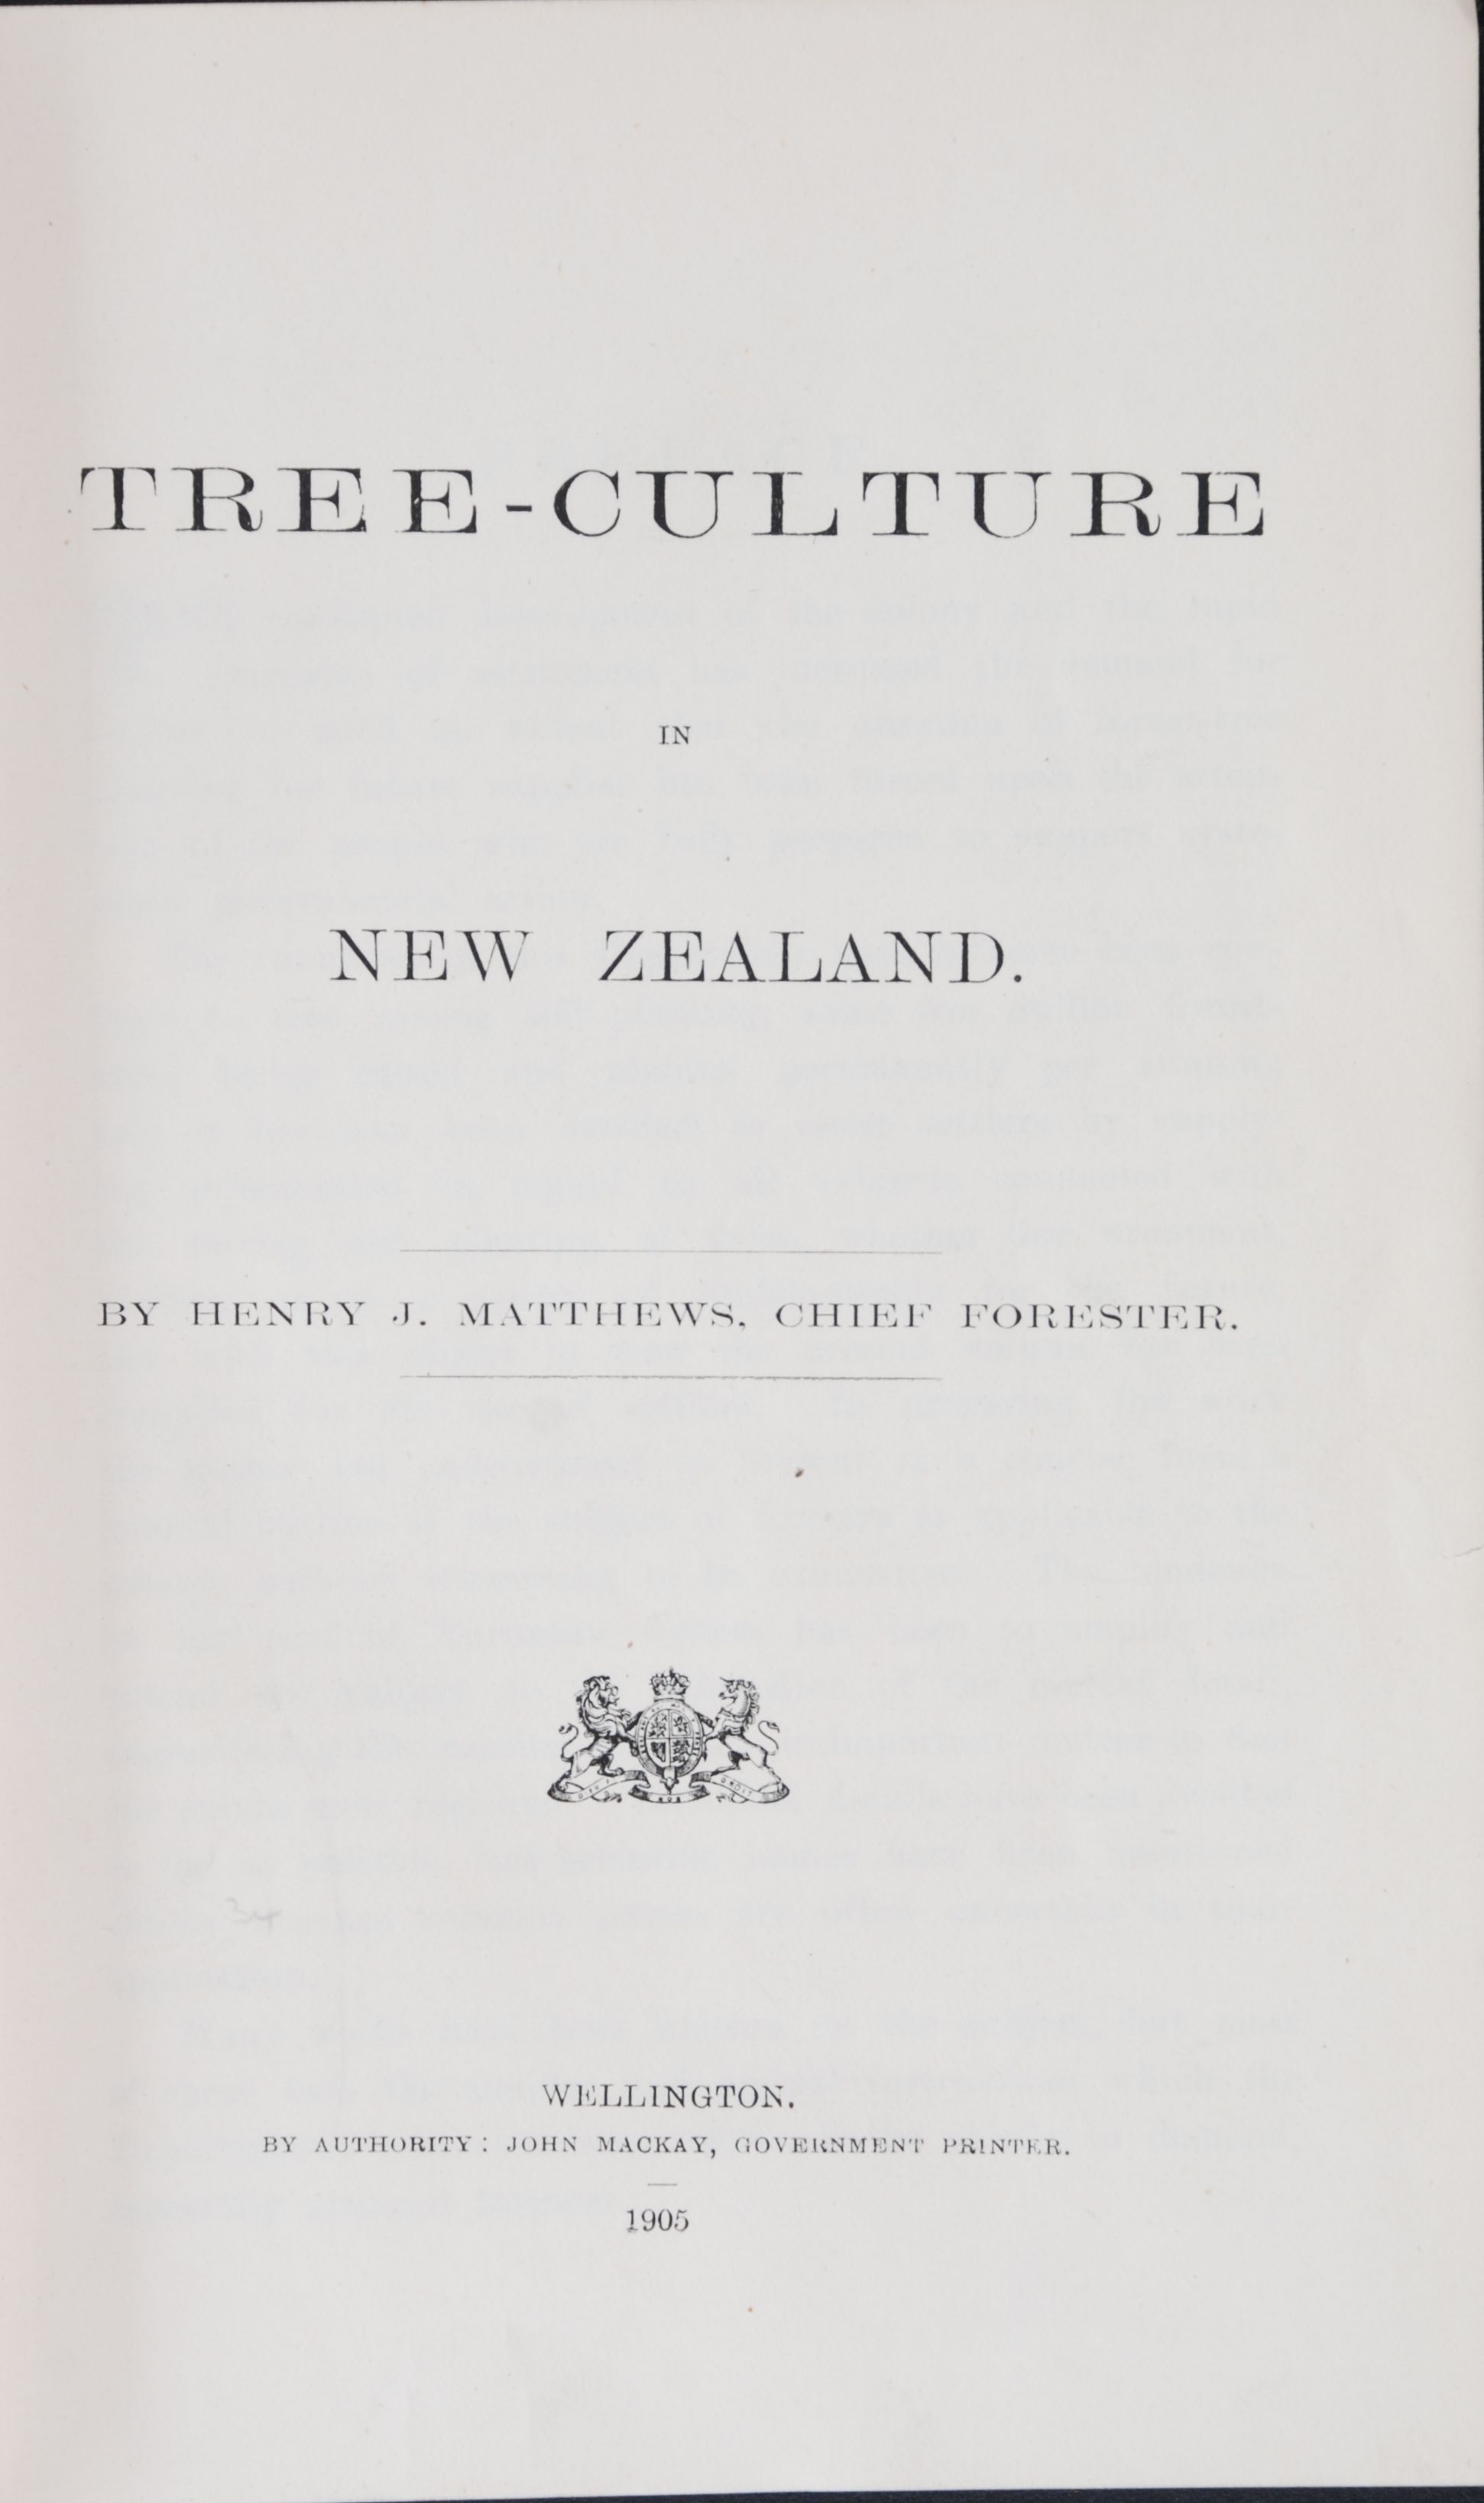 Henry J. Matthews. Tree-culture in New Zealand.  Wellington: Government Printer, 1905.